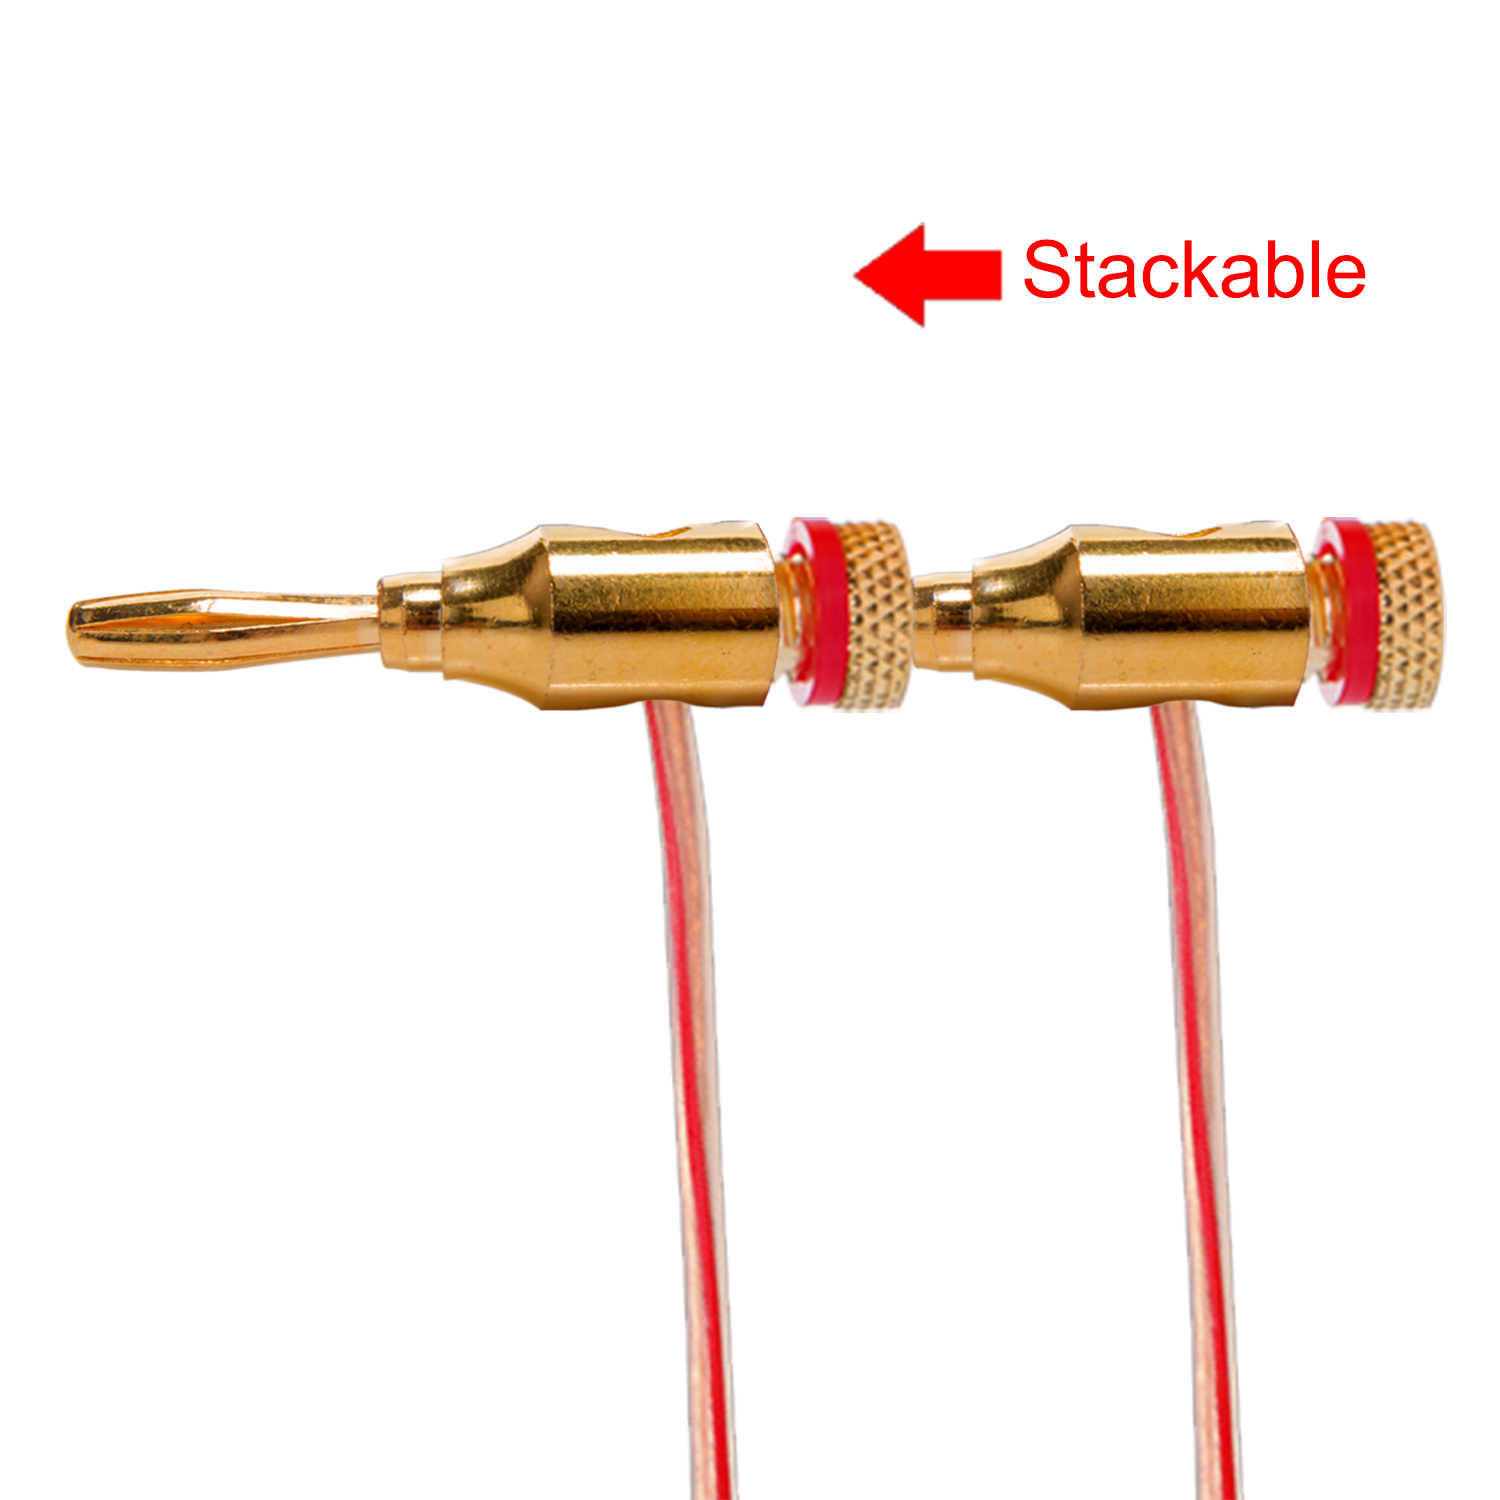 20pcs gold plated musical audio speaker cable wire connector 4mm banana plugs ebay. Black Bedroom Furniture Sets. Home Design Ideas